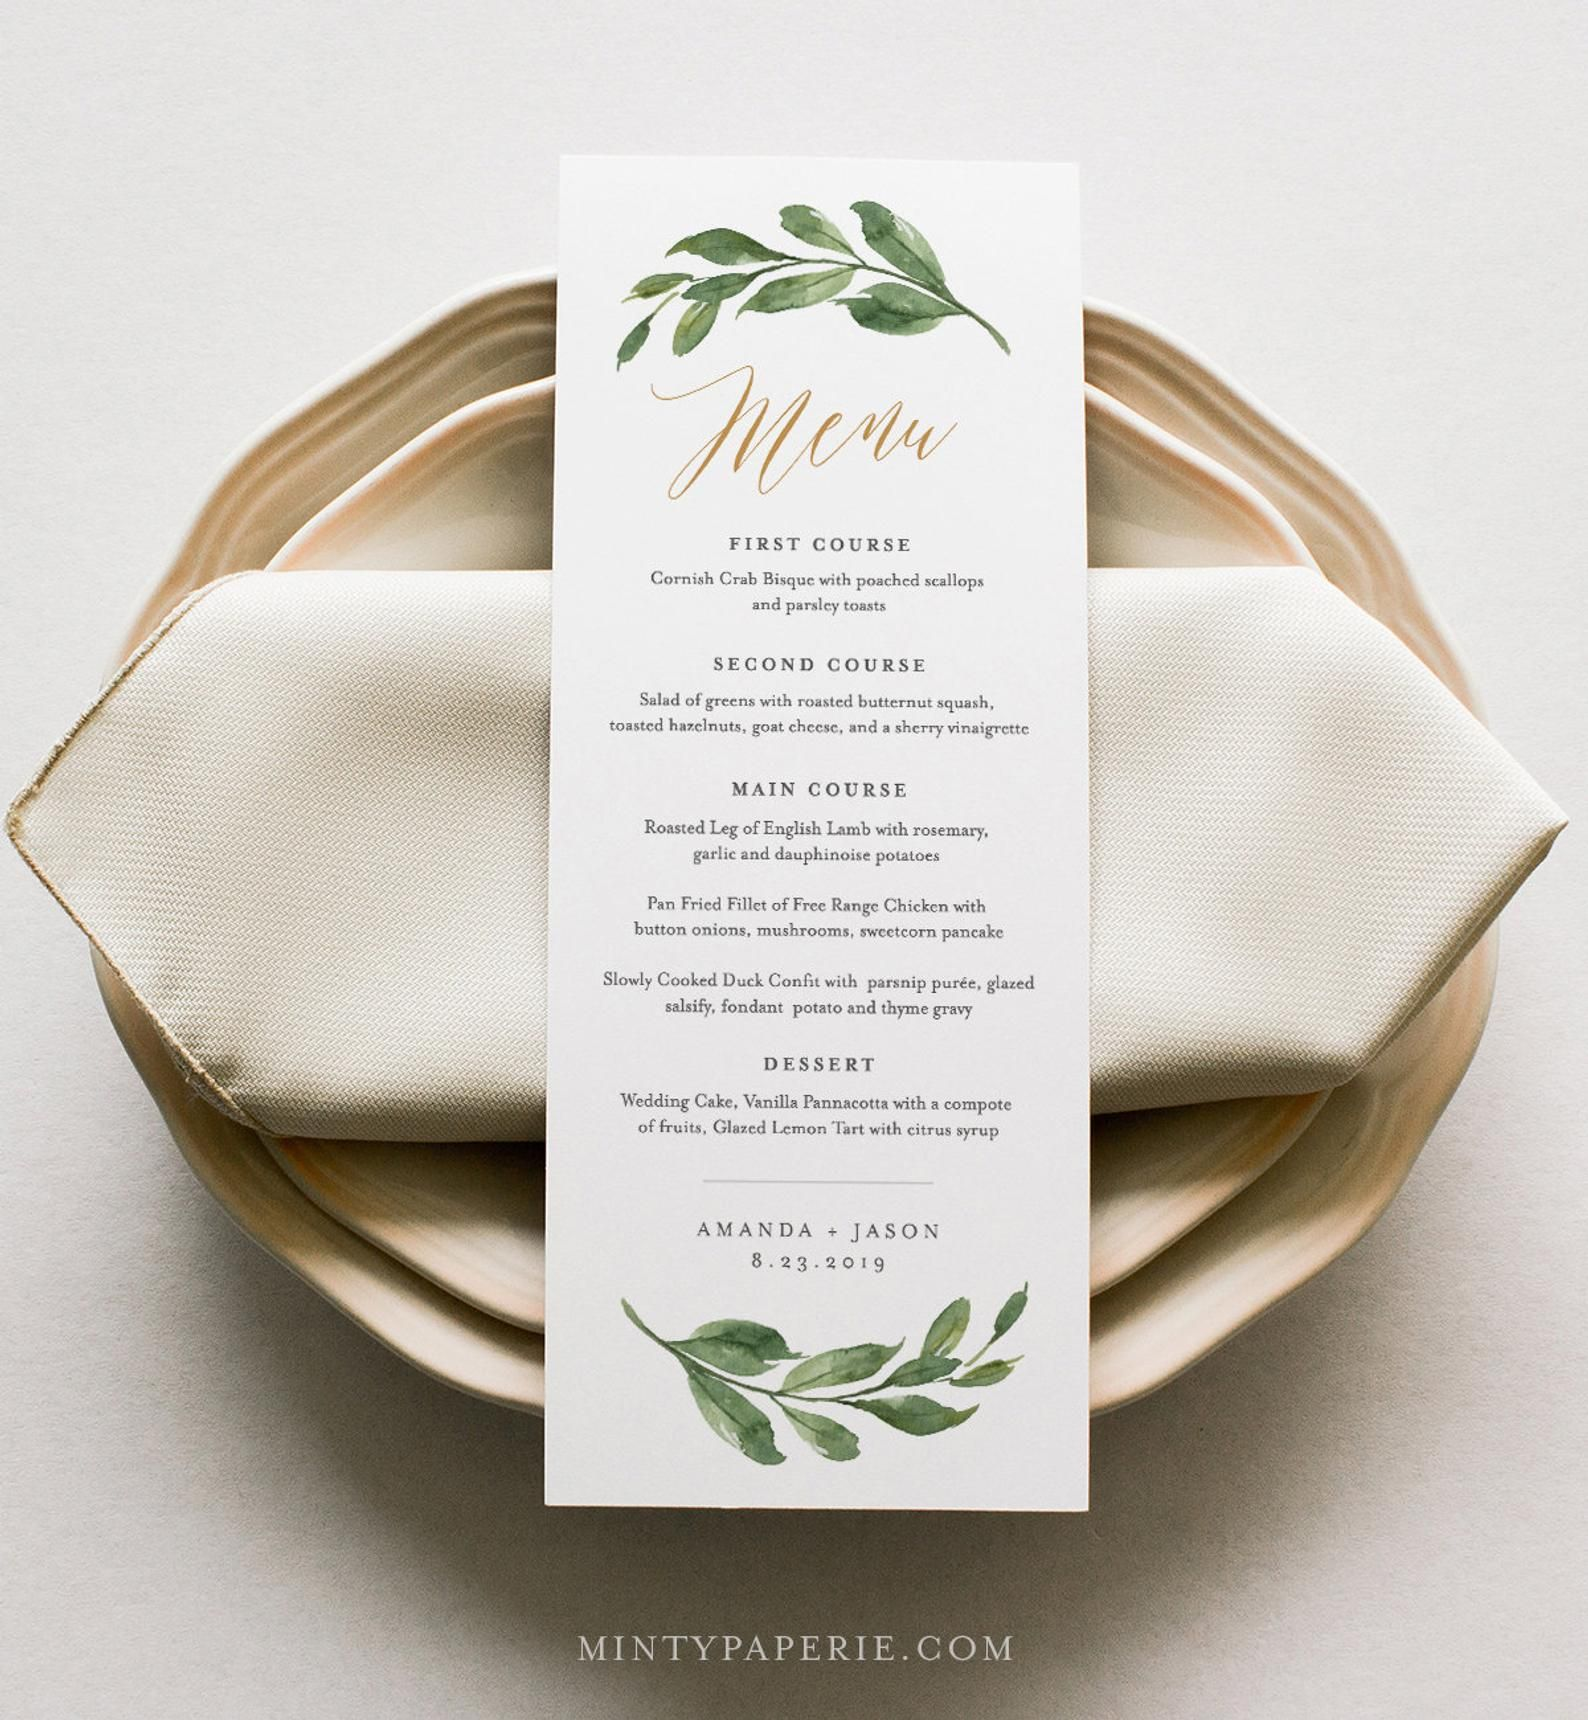 Wedding Menu Template Greenery And Gold Wedding Menu Card Printable Diy Menu Instant Download Editable Text 5x7 3 65x9 067 132wm Menu Card Template Wedding Menu Template Diy Menu